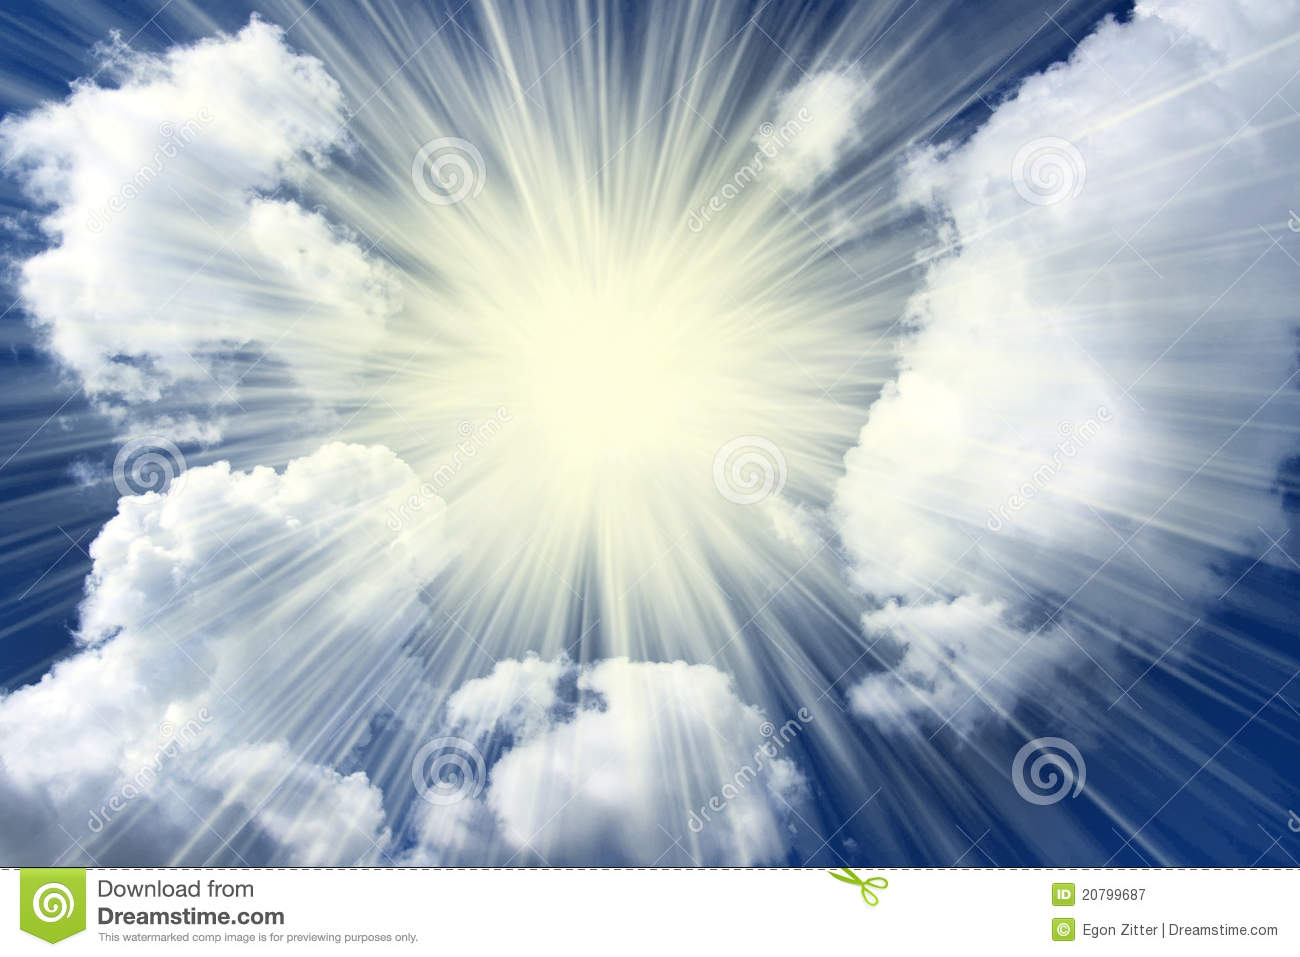 Sunburst Clouds Royalty Free Stock Photography - Image: 20799687